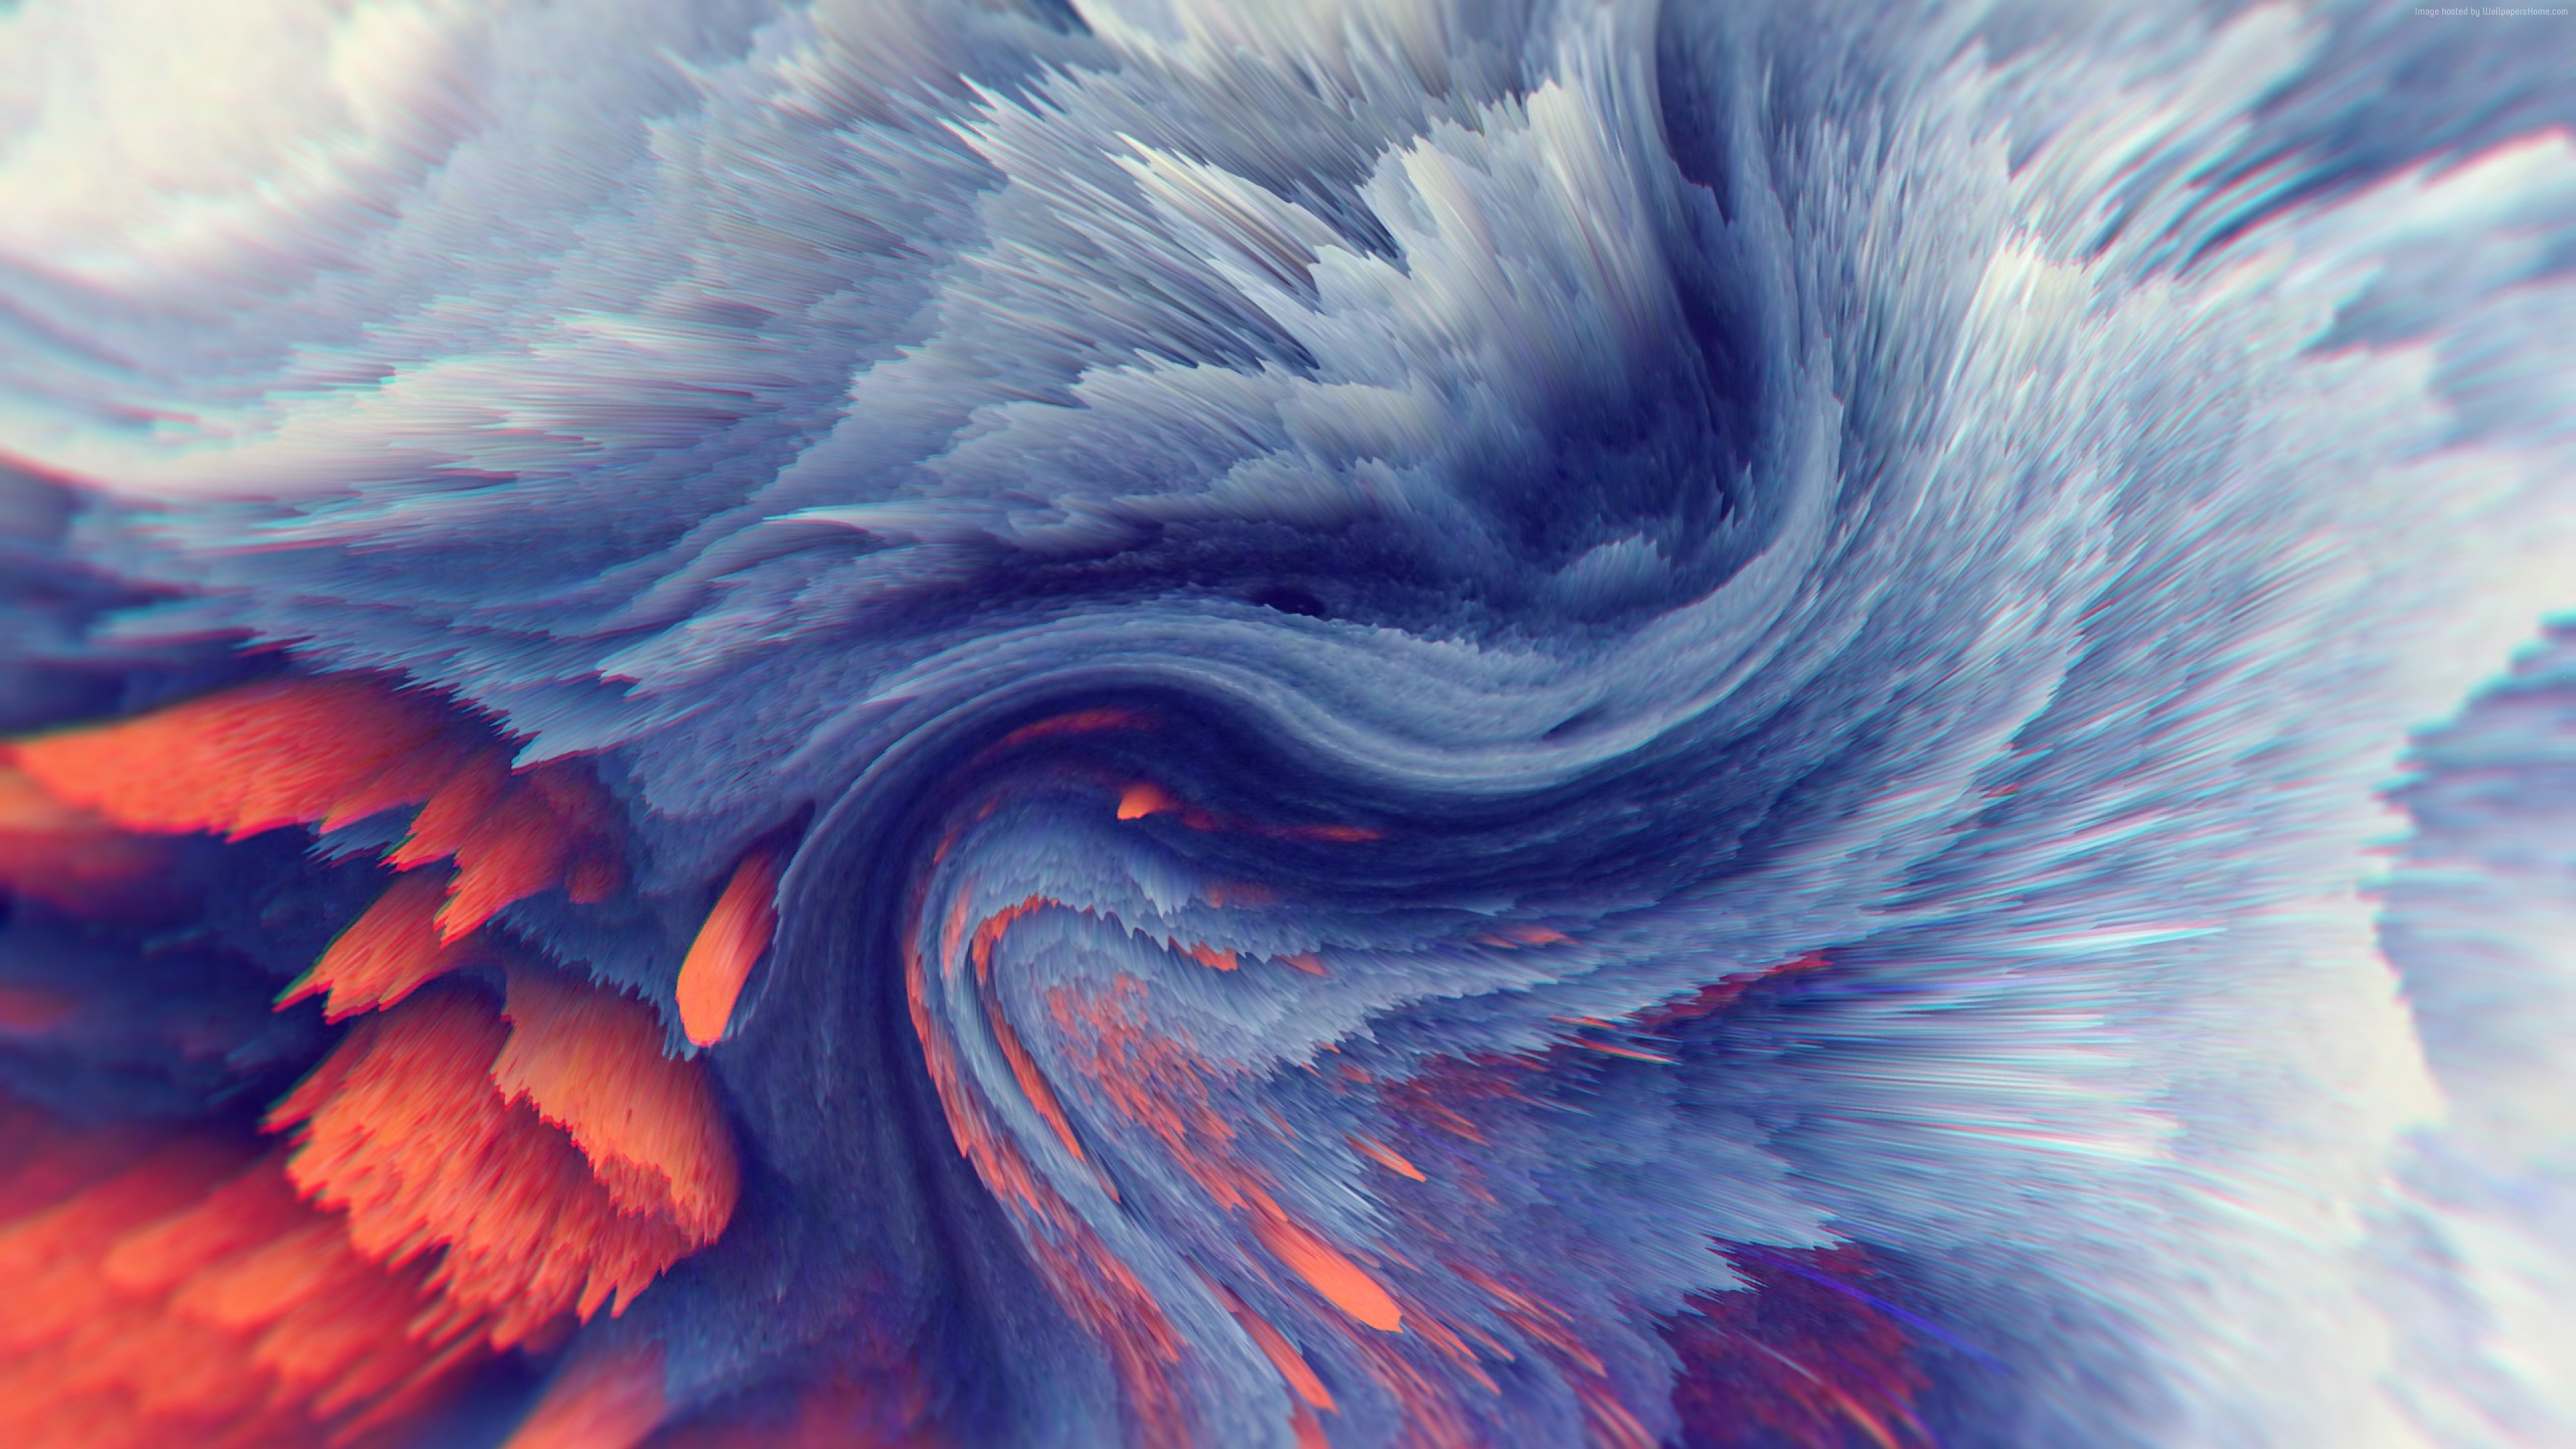 Wallpaper Waves Hd Abstract Wallpaper Download High